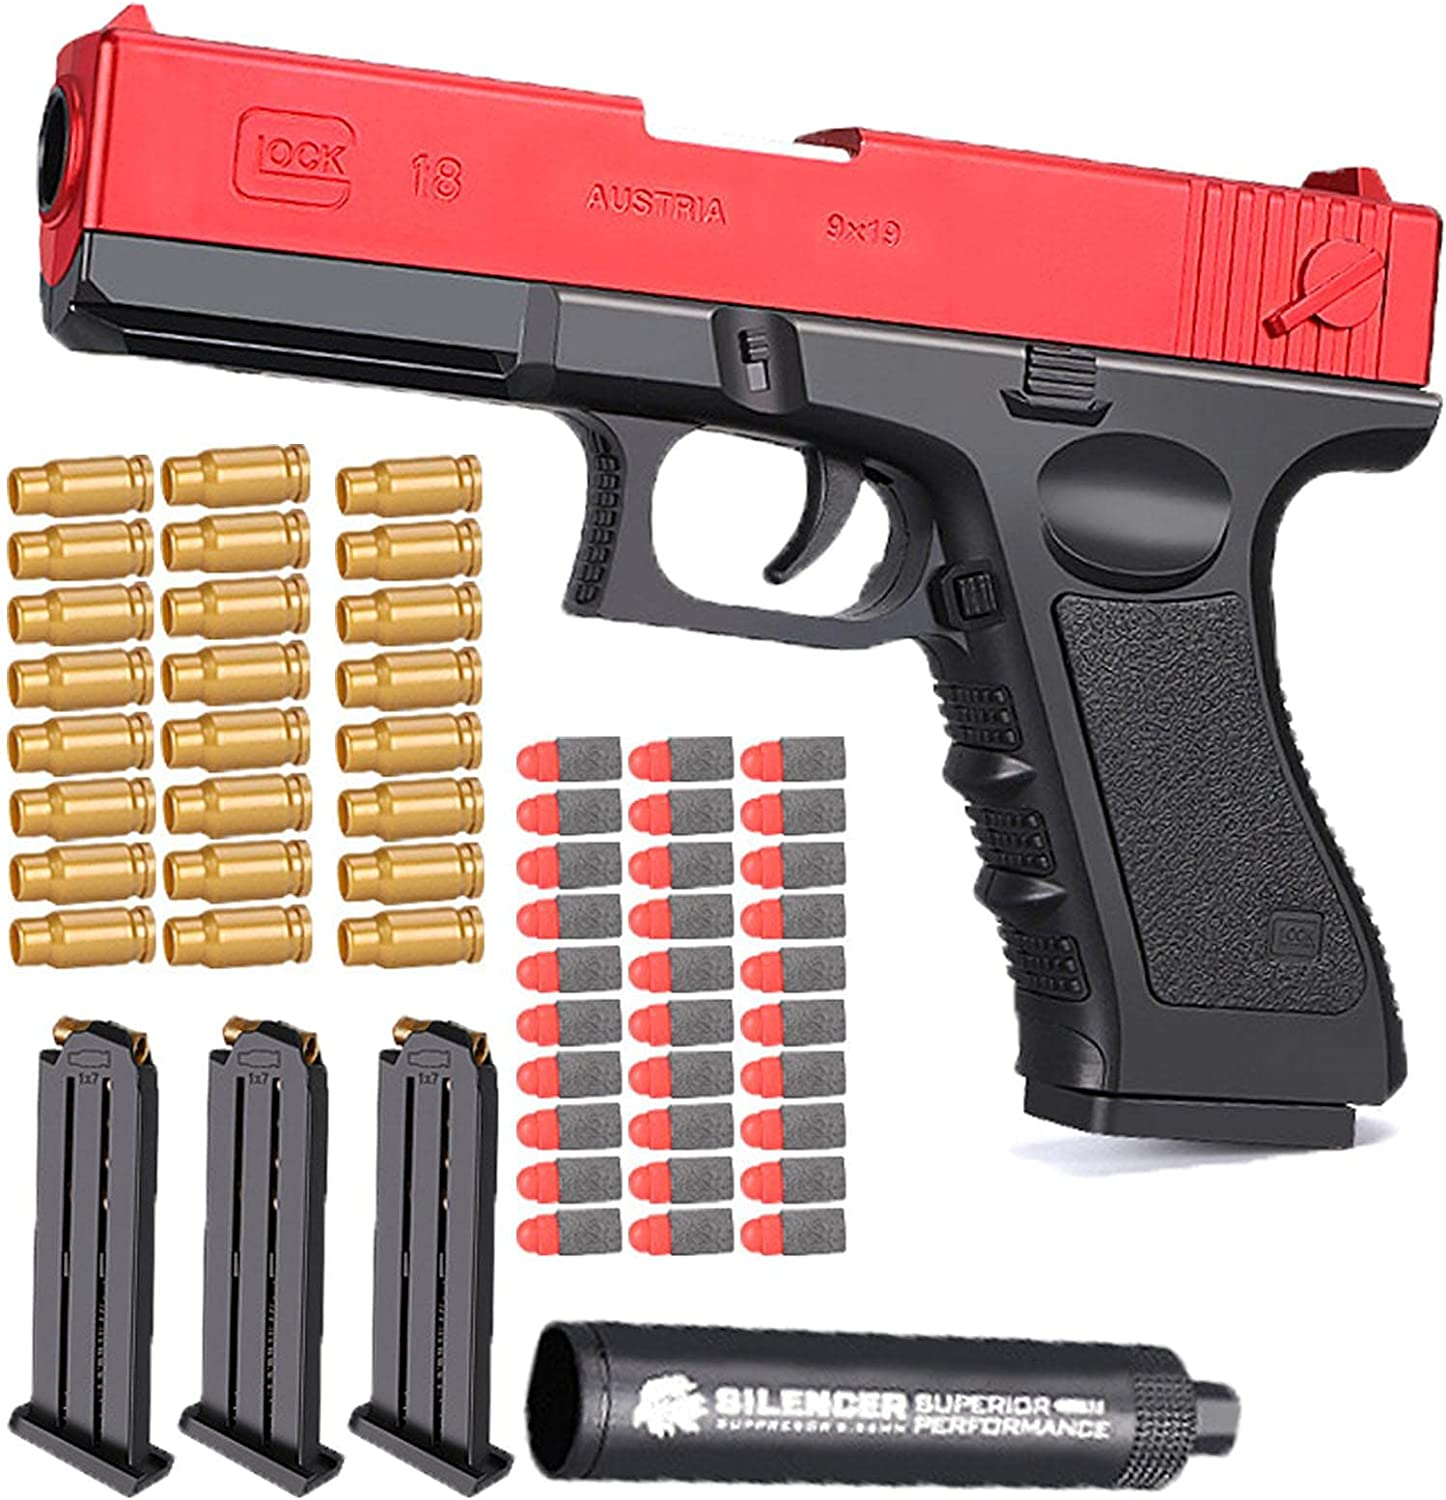 FTIK Shell Ejection Soft Bullet Toy Gun, M1911, 1:1 Size Real Dimensions with Ejecting Magazine and Silencer, Teach Shooter and Gun Safety, Outdoor Game Red